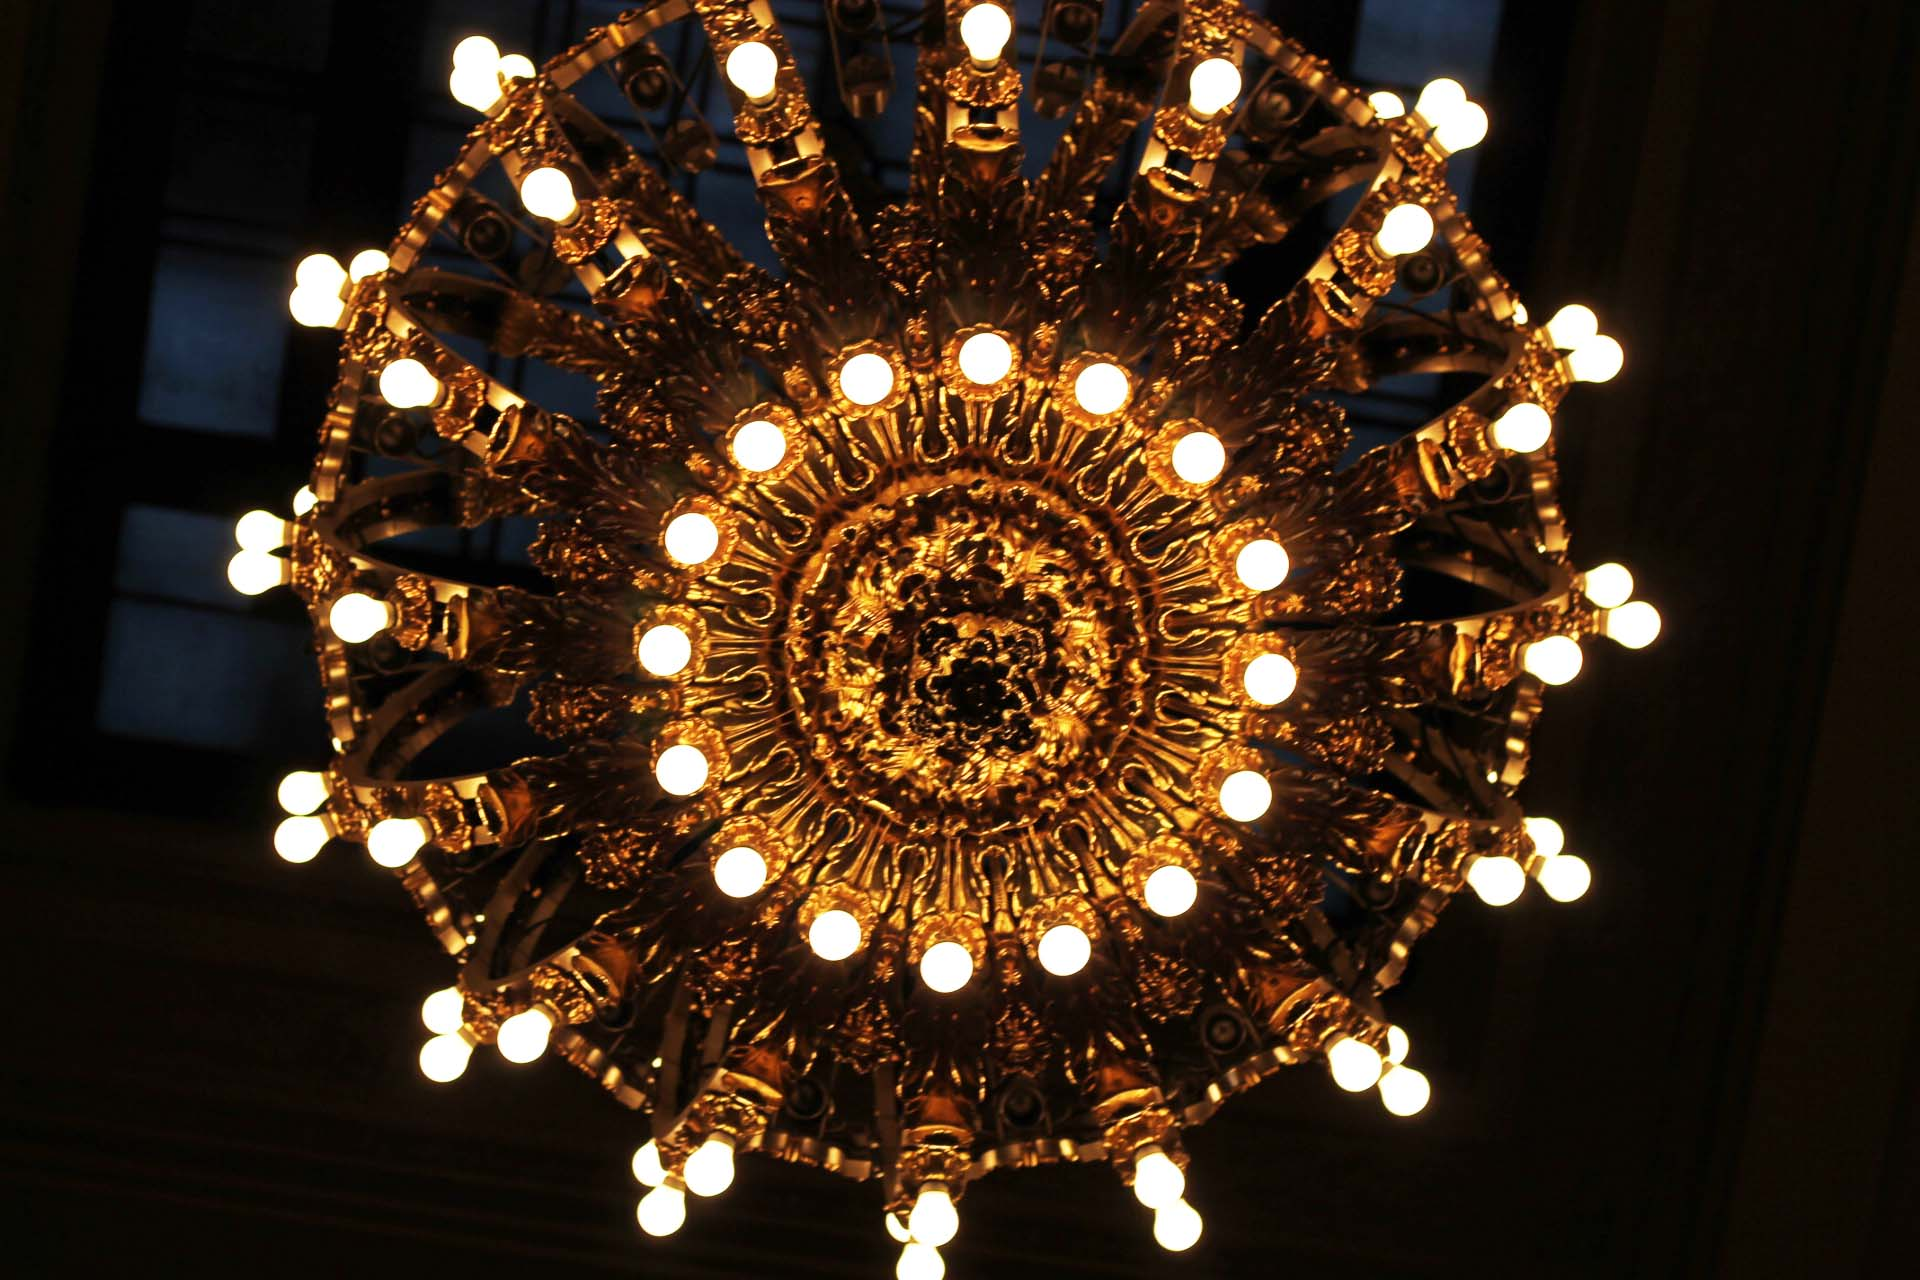 Chandelier of Grand Central Station. This was our 3rd stop on our historical building tour of New York I guess you could say.With the thousands of people and little holiday market, this place amazes me just as much as it did the first time I saw it.